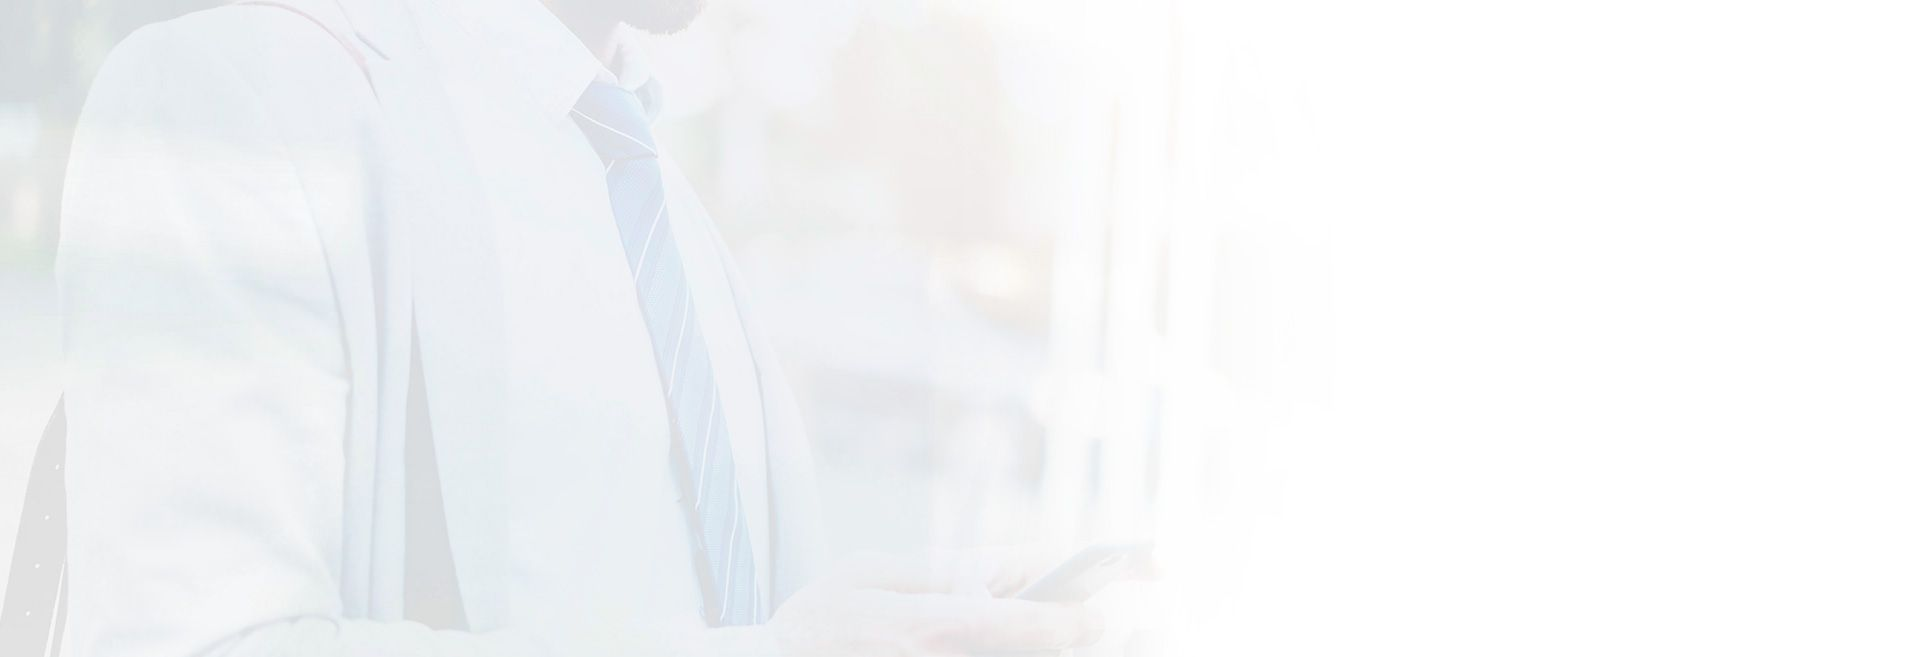 Corporate-banner-image-16